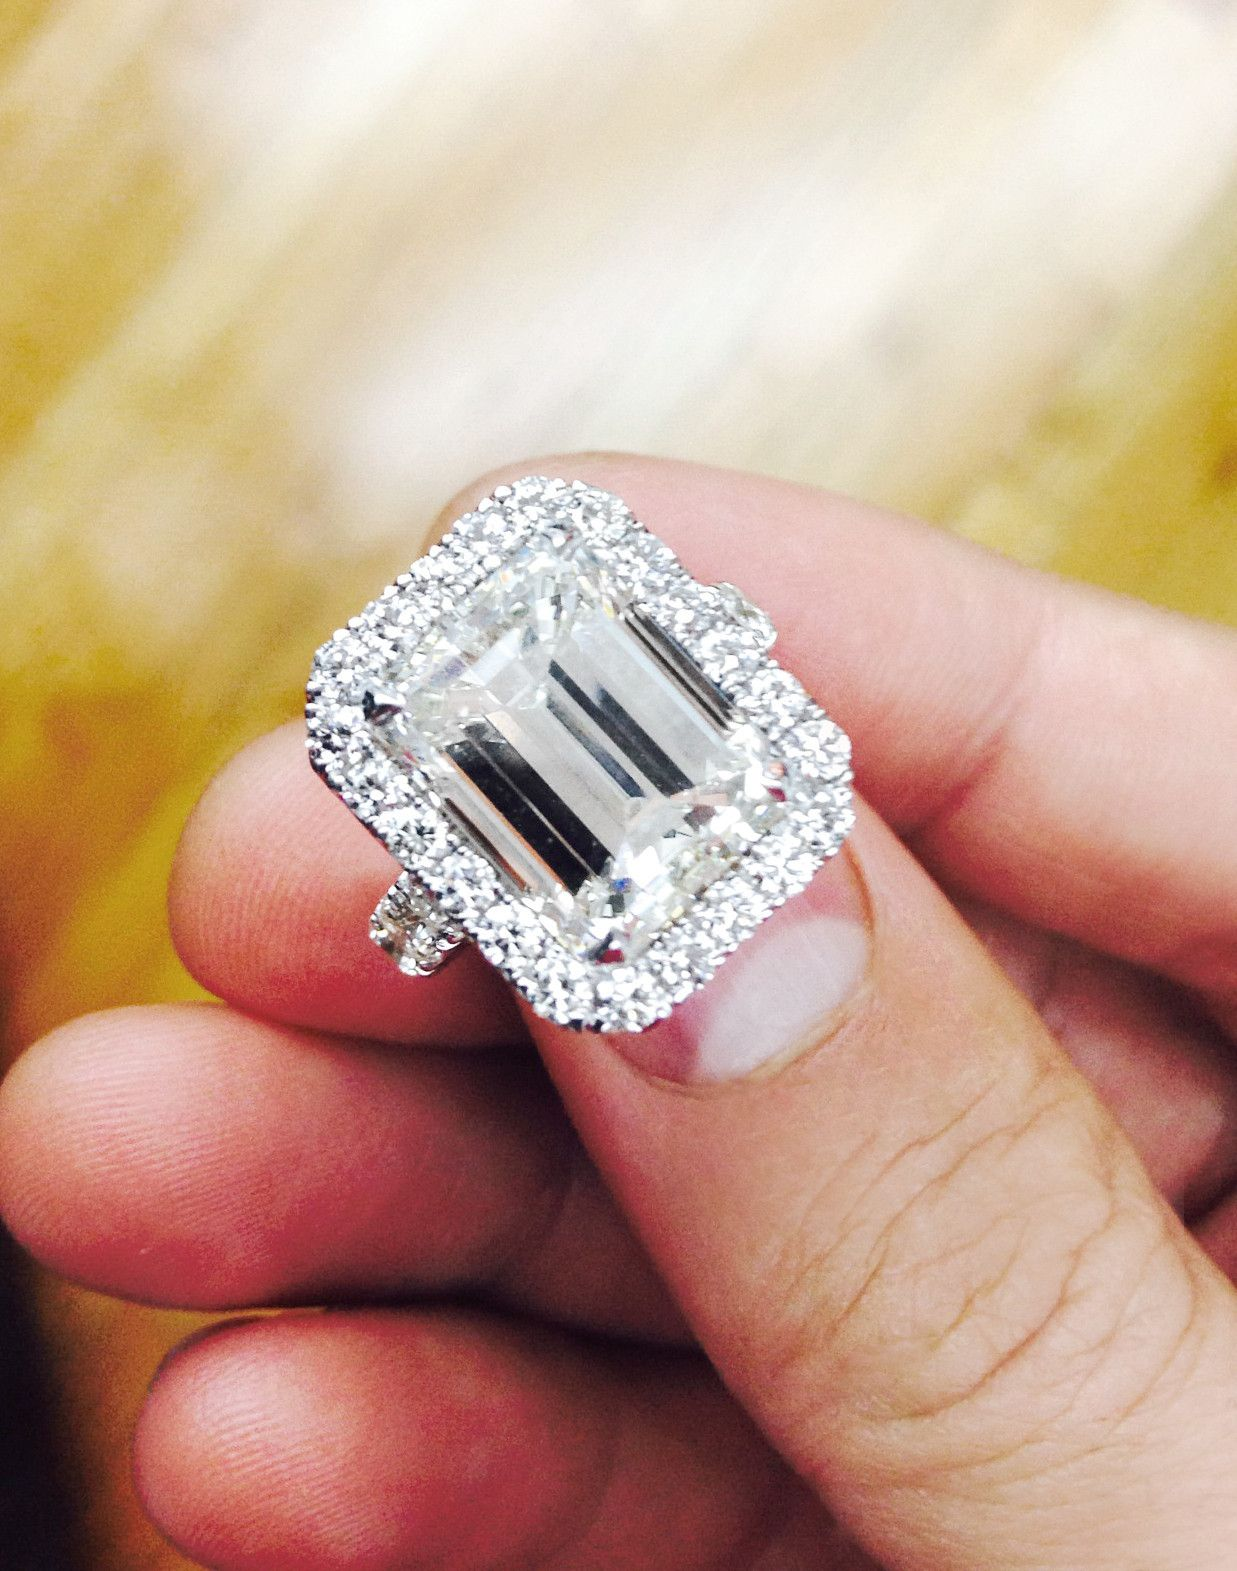 Close up Evelyn Lozada s engagement ring